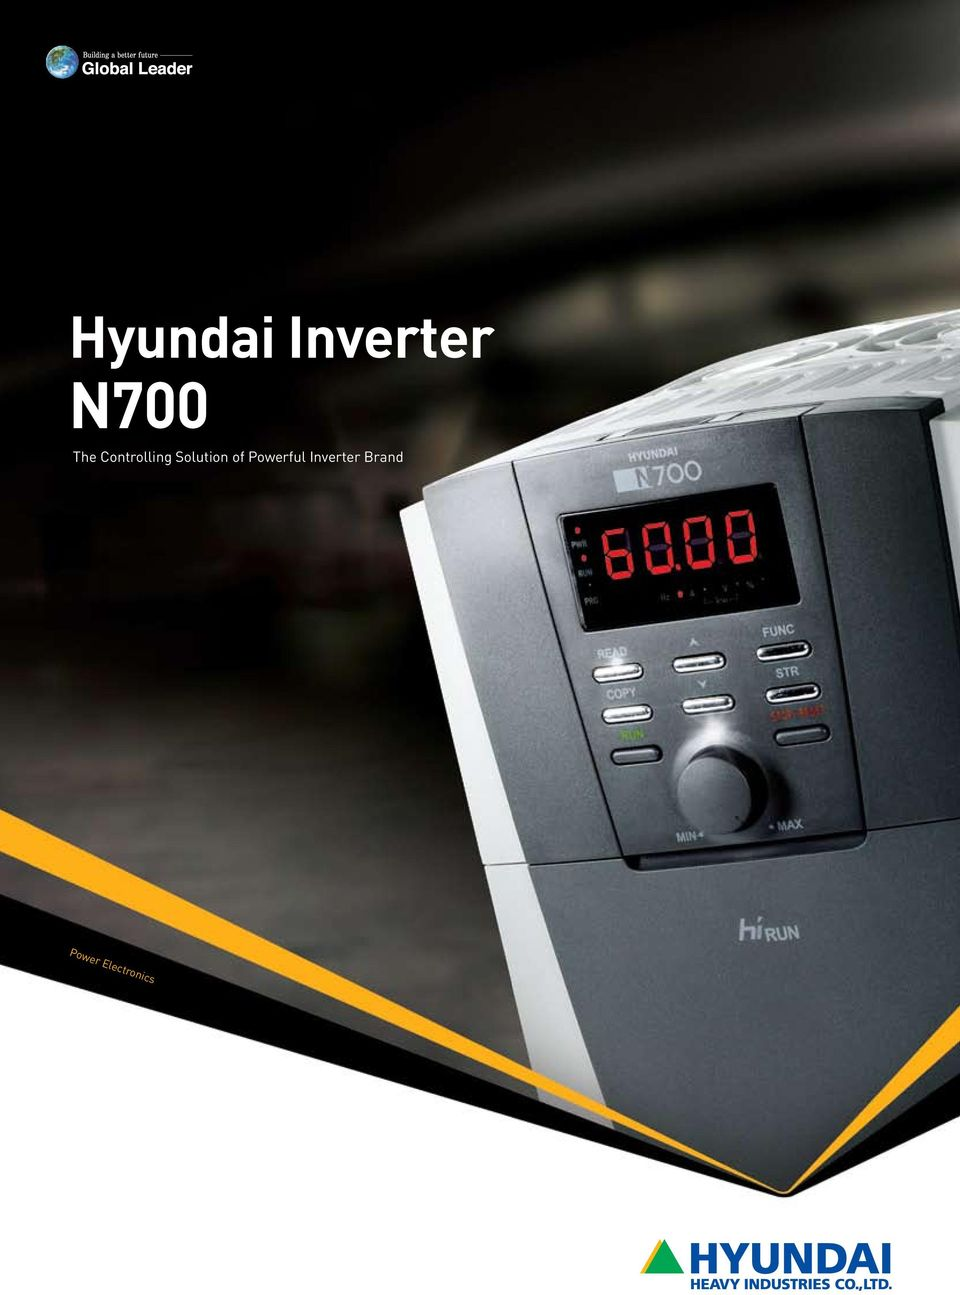 Hyundai Inverter N700 The Controlling Solution Of Powerful Inverter Brand Power Electronics Pdf Free Download